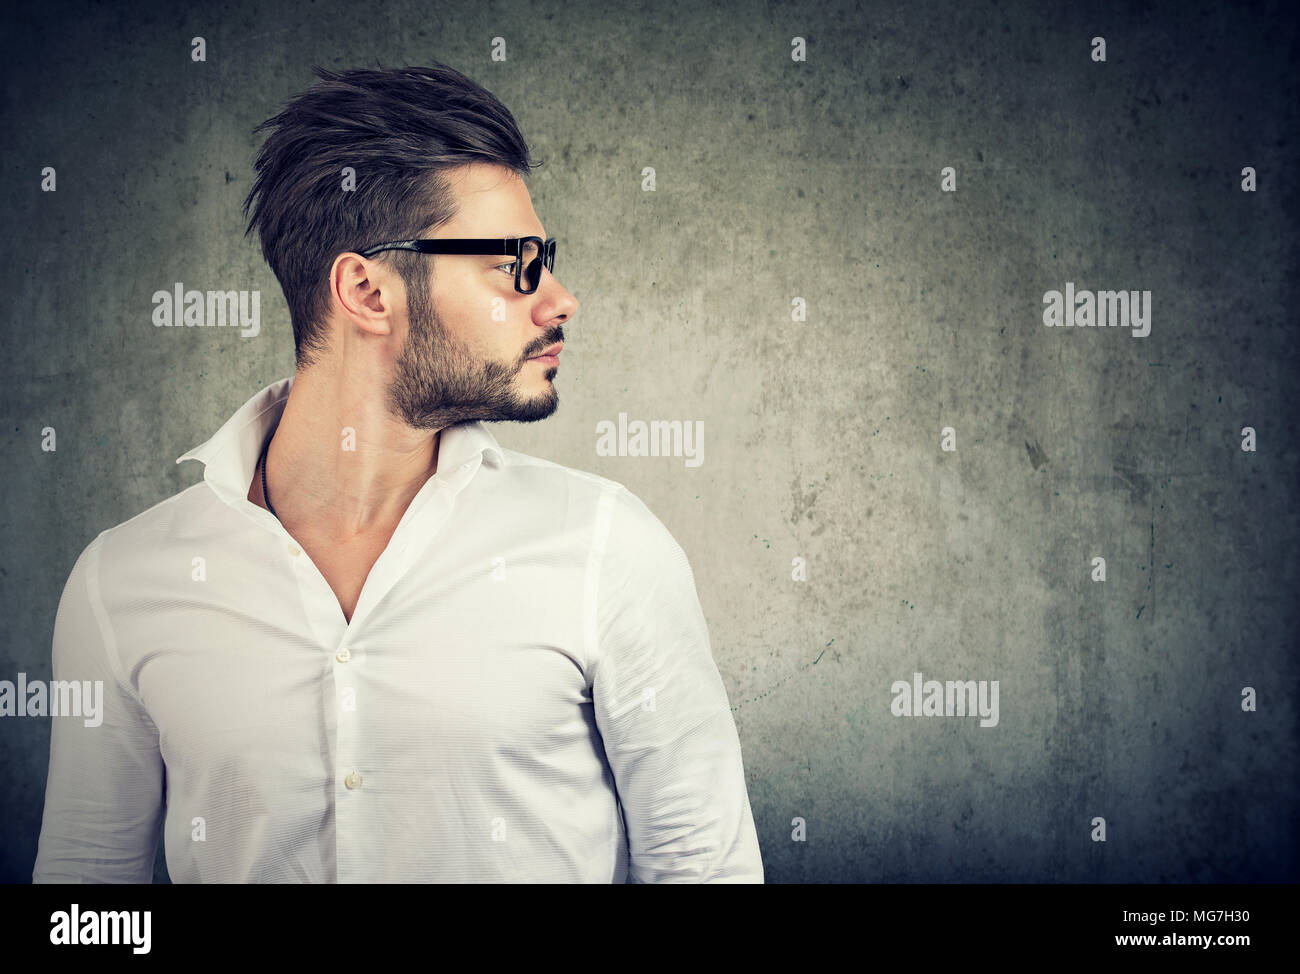 6a7c3caacdcf Stylish bearded guy with trendy hairstyle wearing glasses and white shirt  standing in profile on gray background.